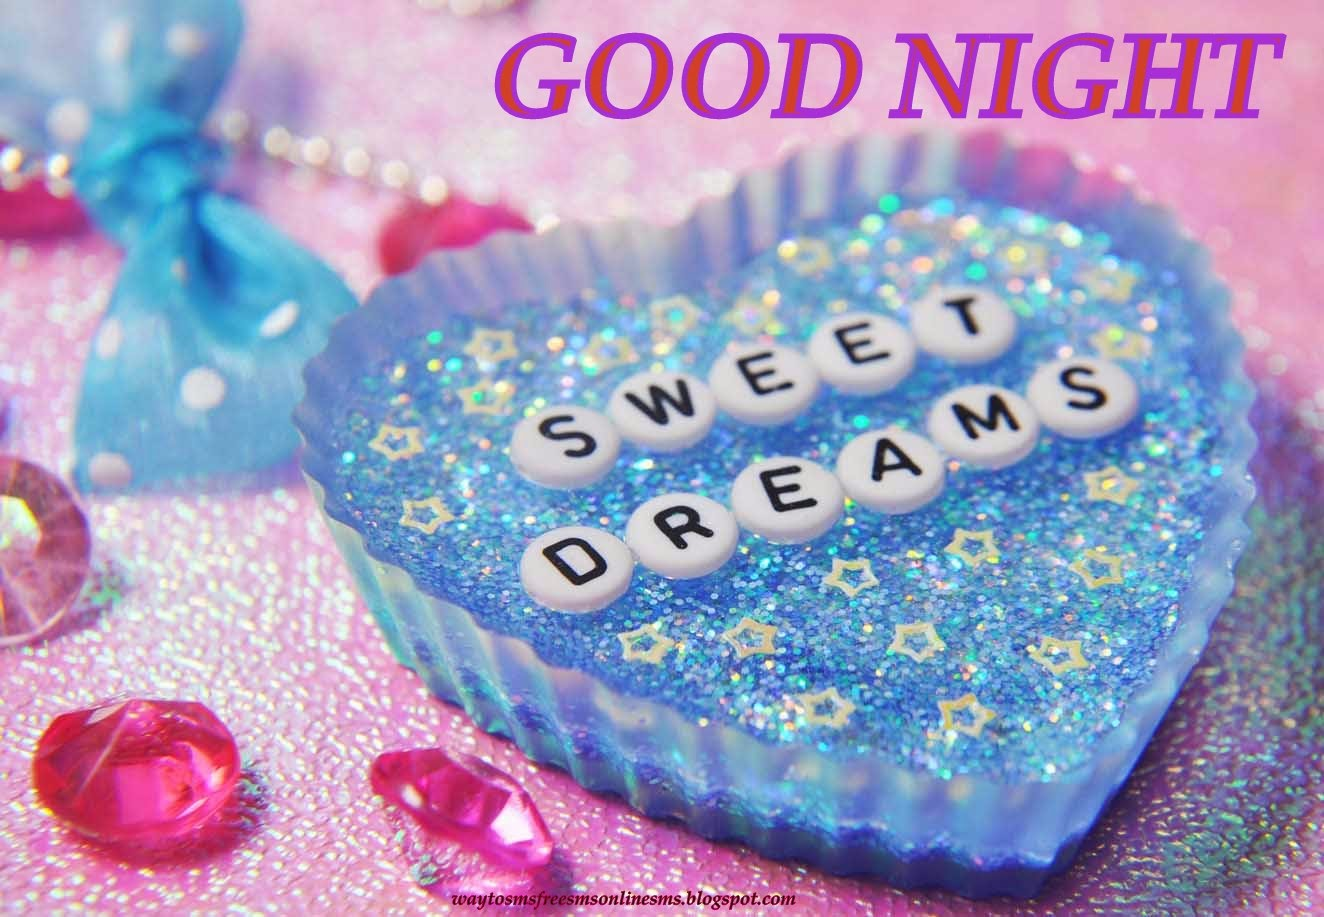 Good Night Sms With Love Wallpaper : The best way to online free sms